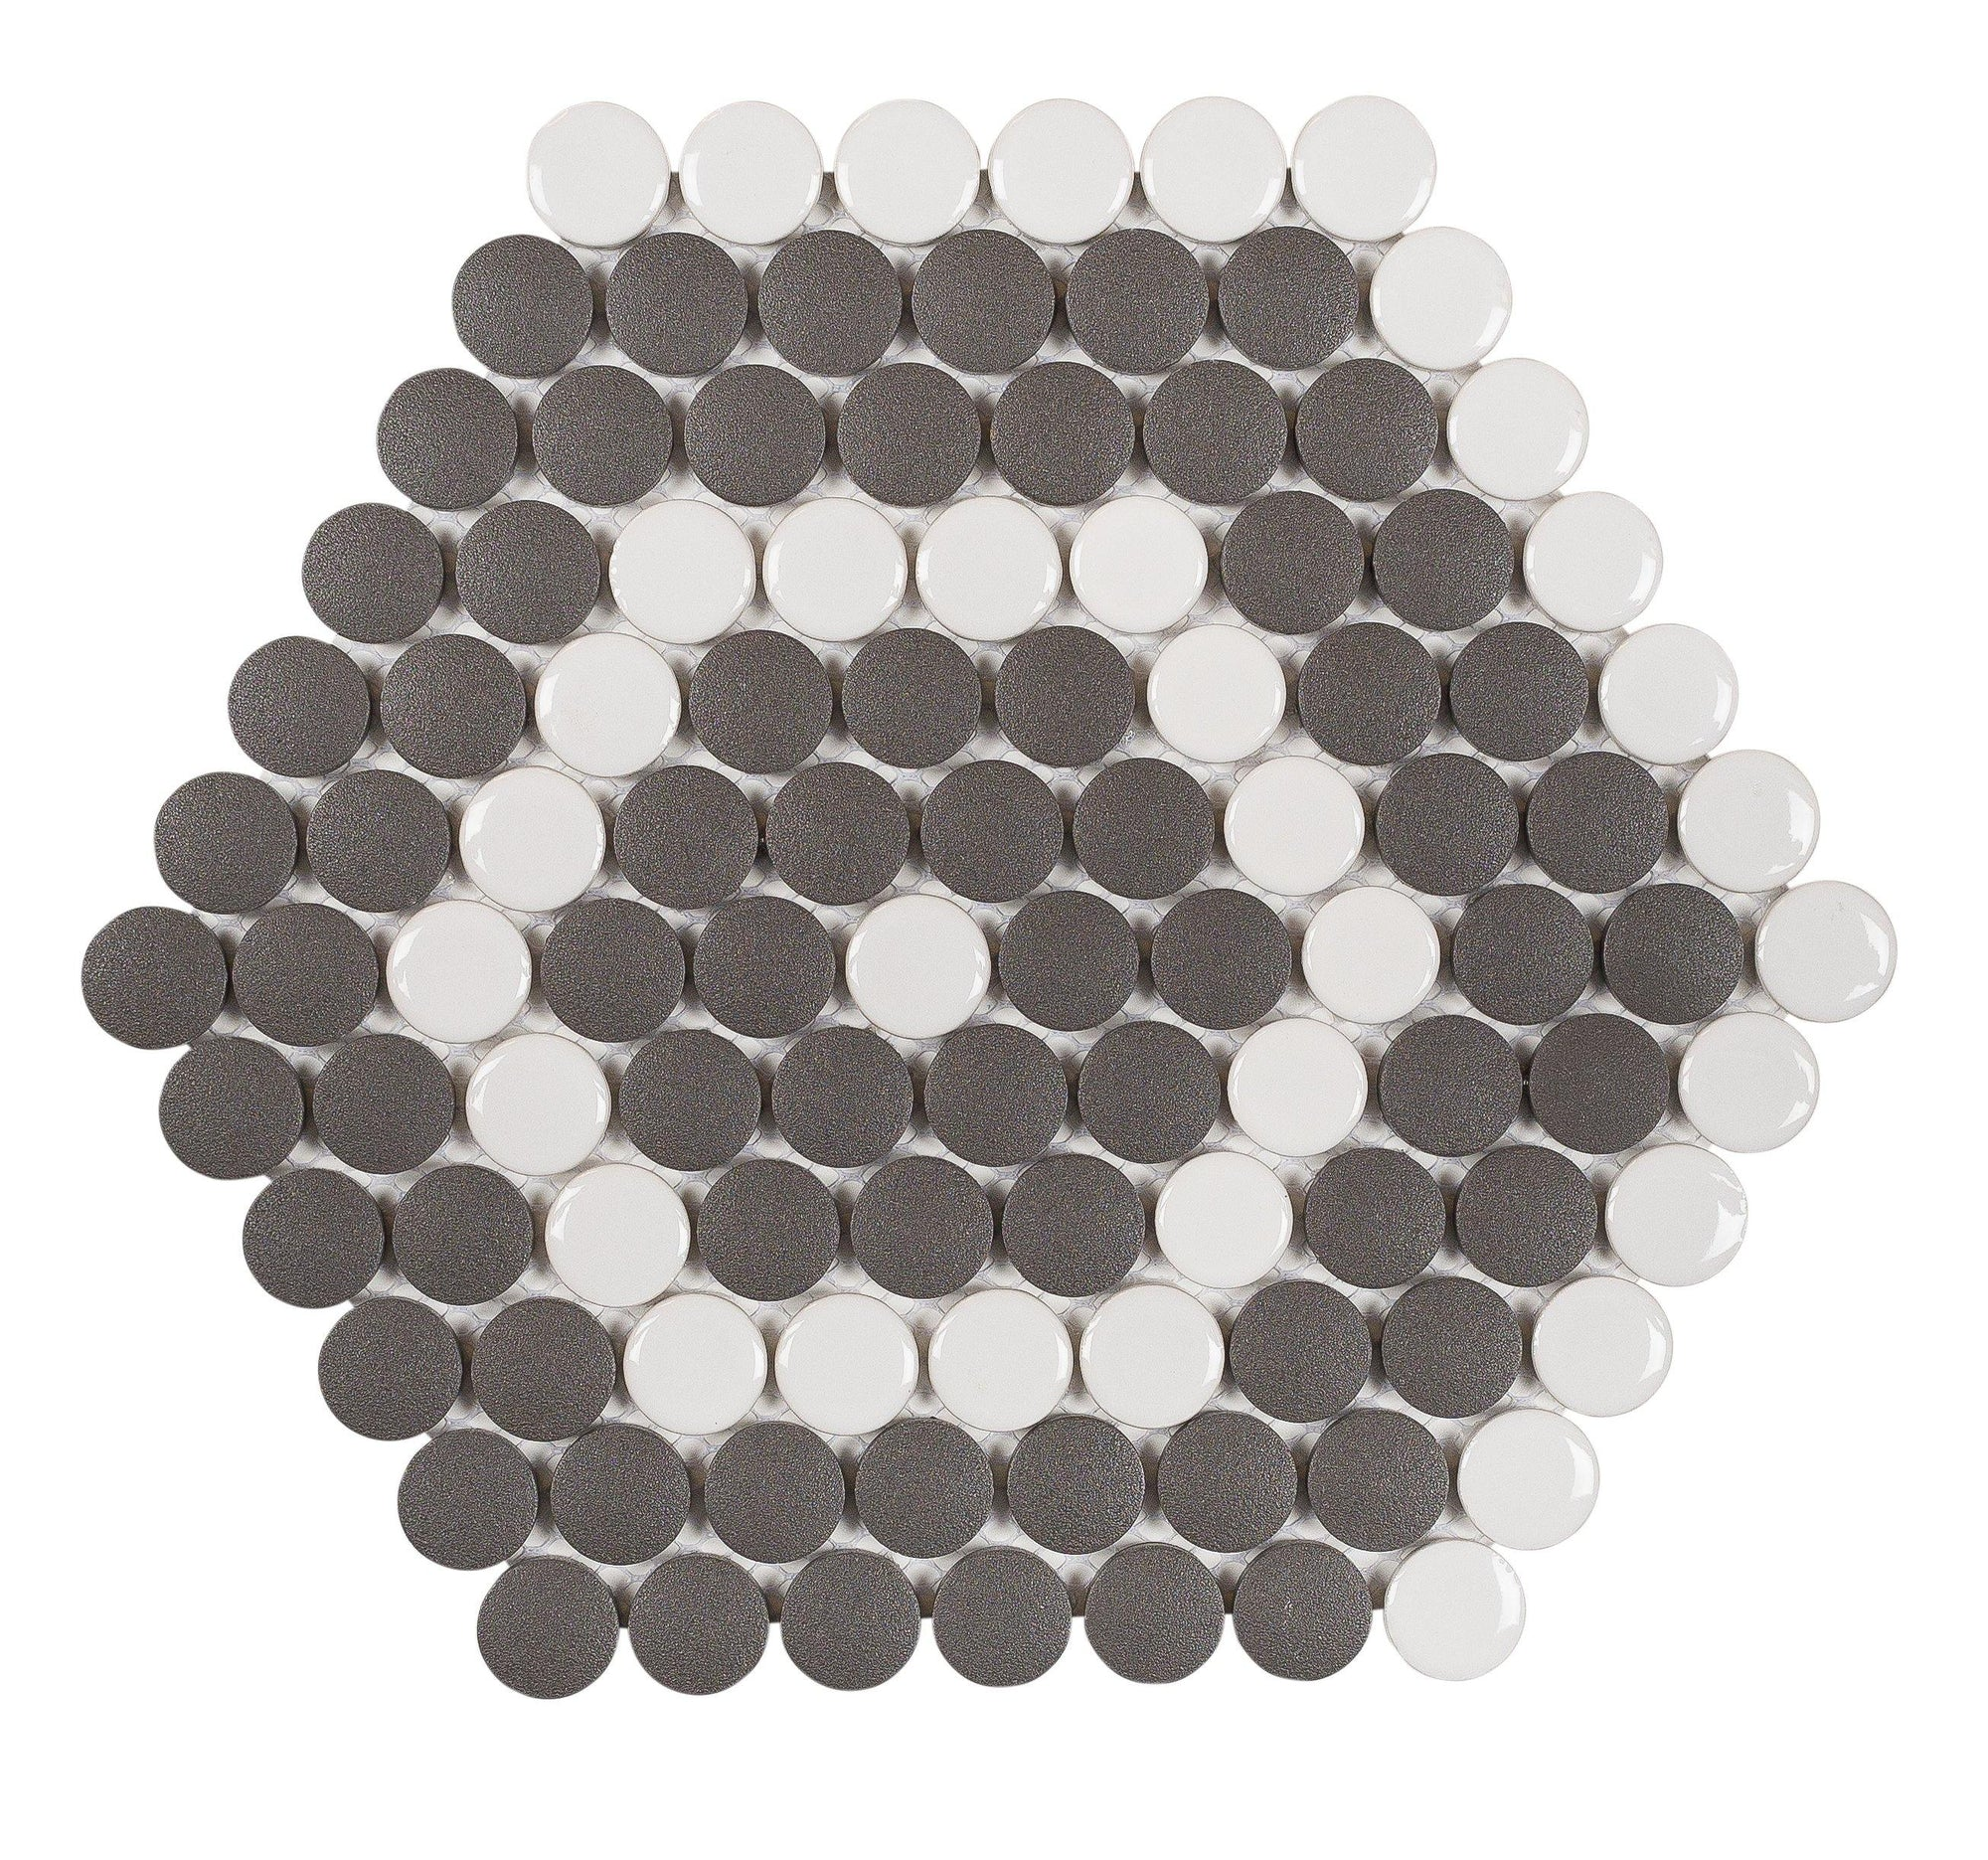 Perth Designer Hexagon Mosaic